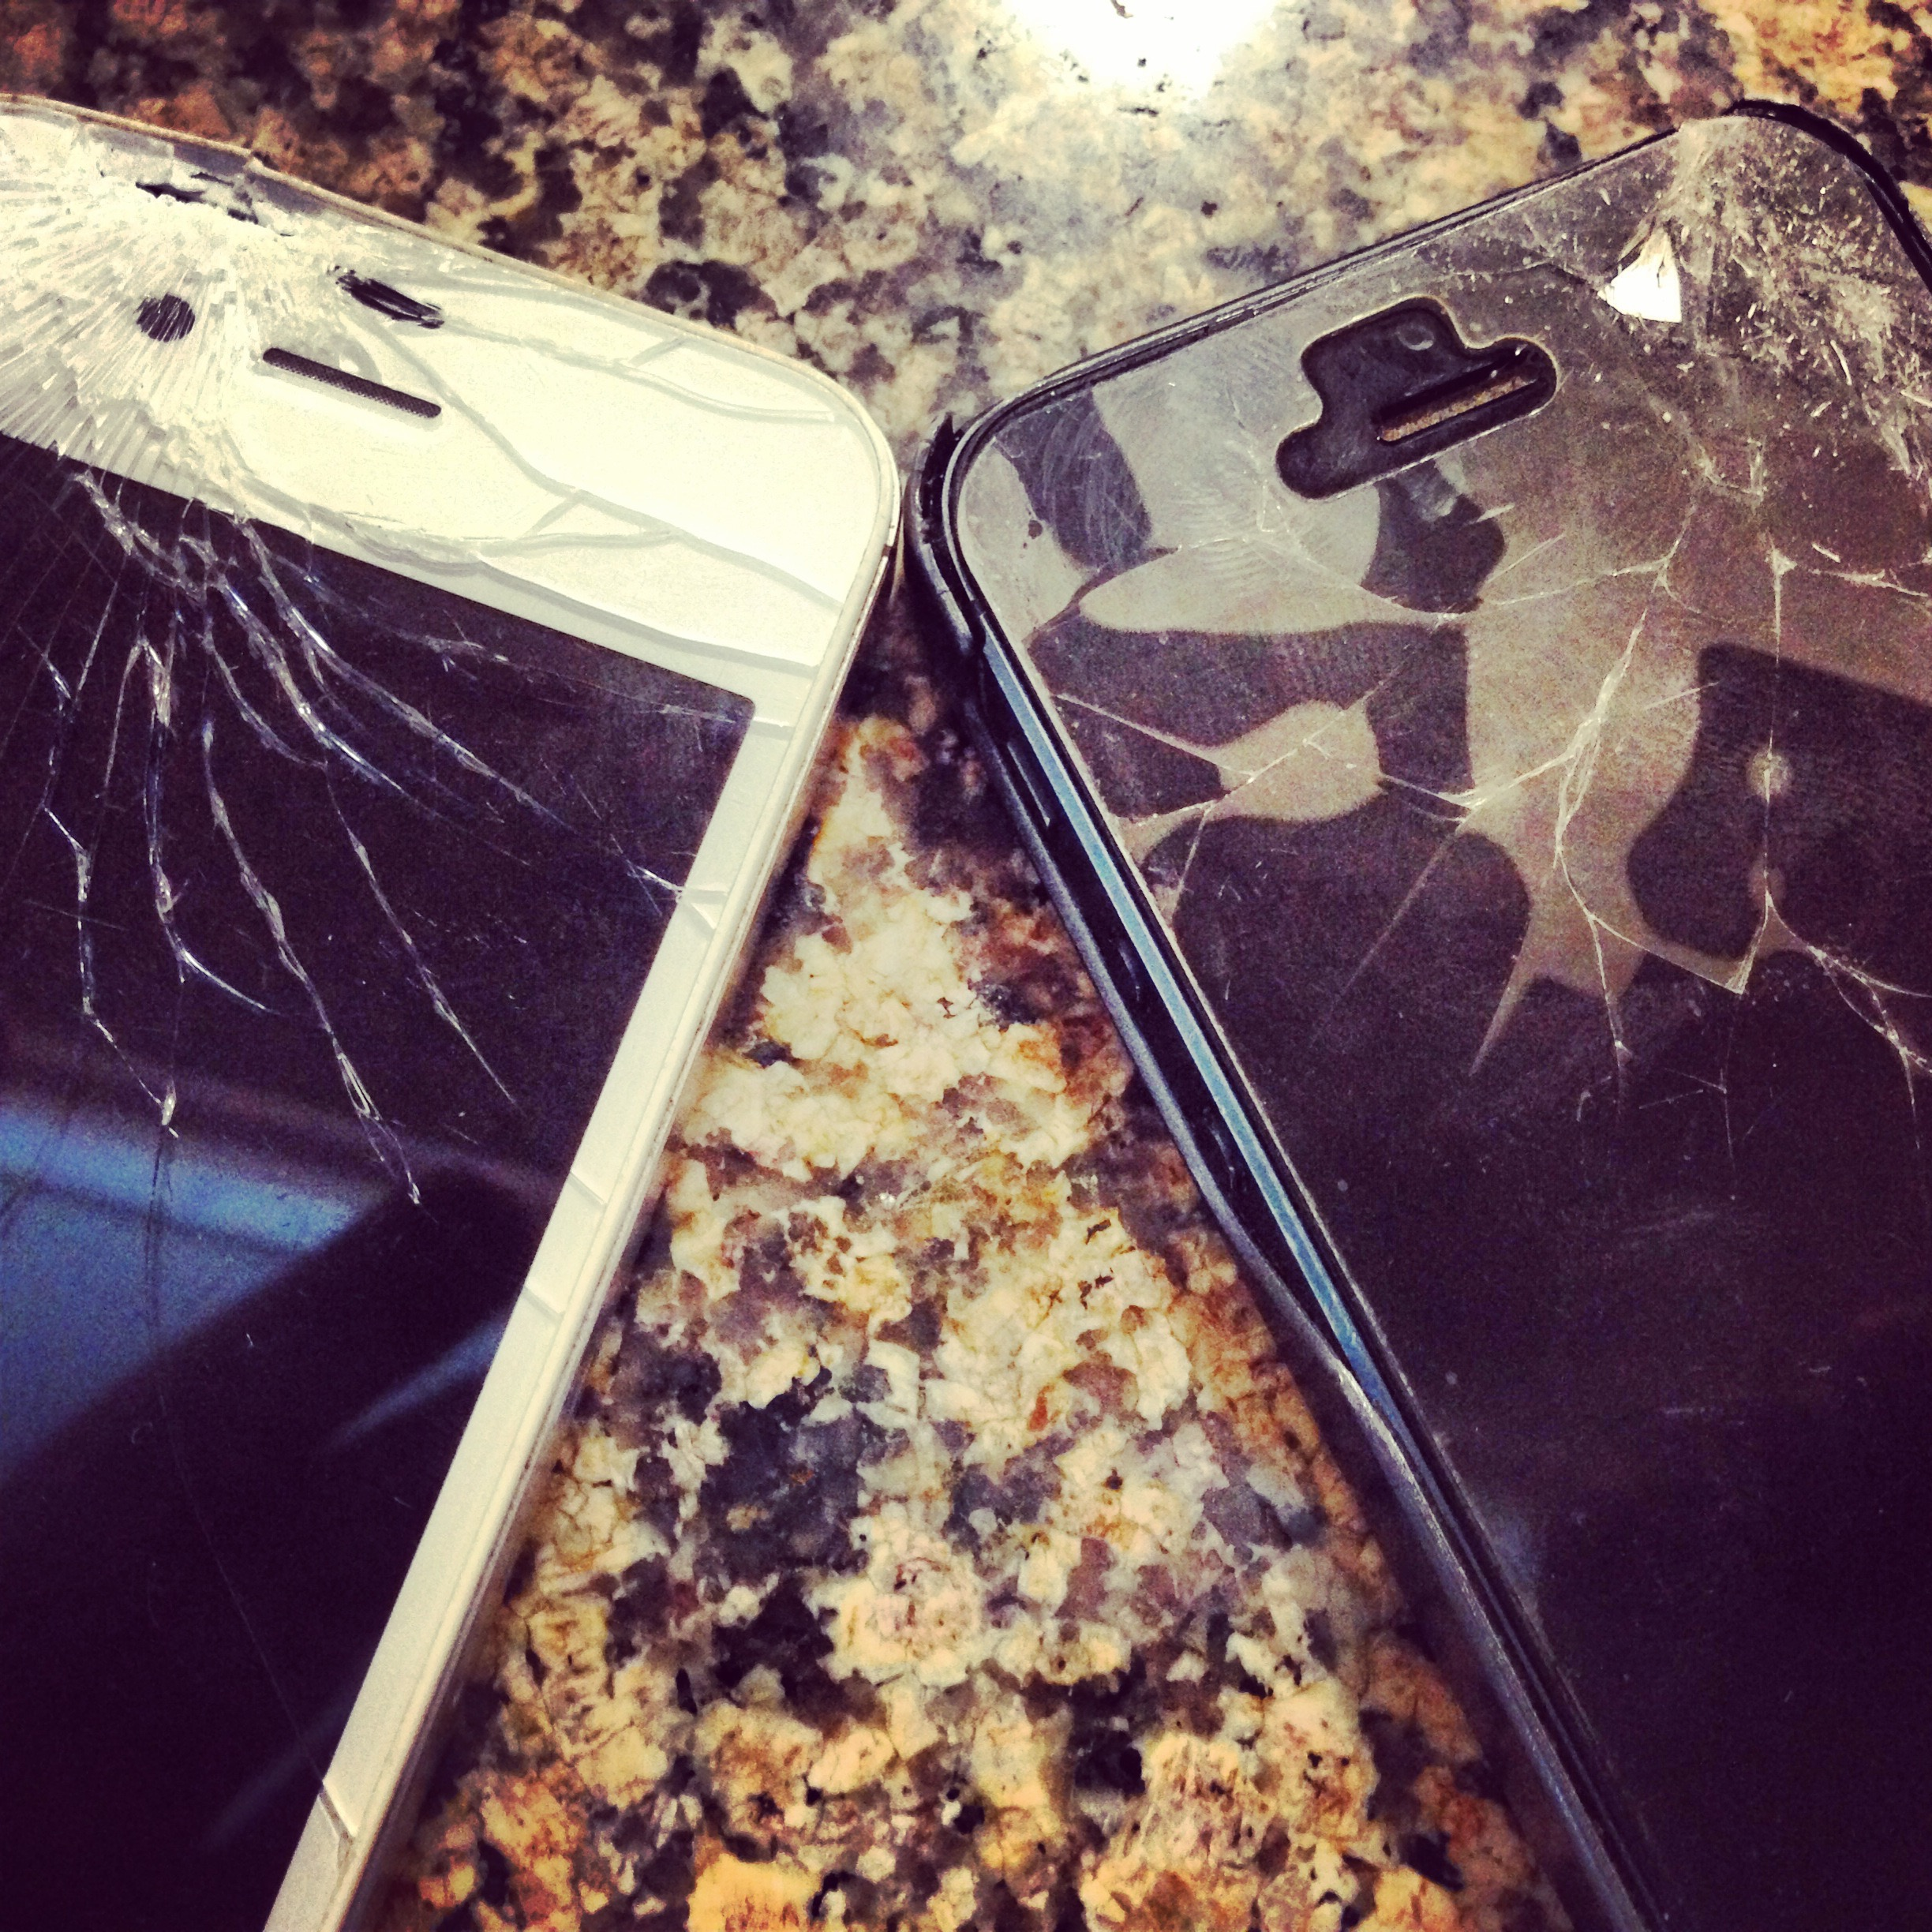 Double Trouble! One stop, Two Cracked iPhone Screen Repair Dubai